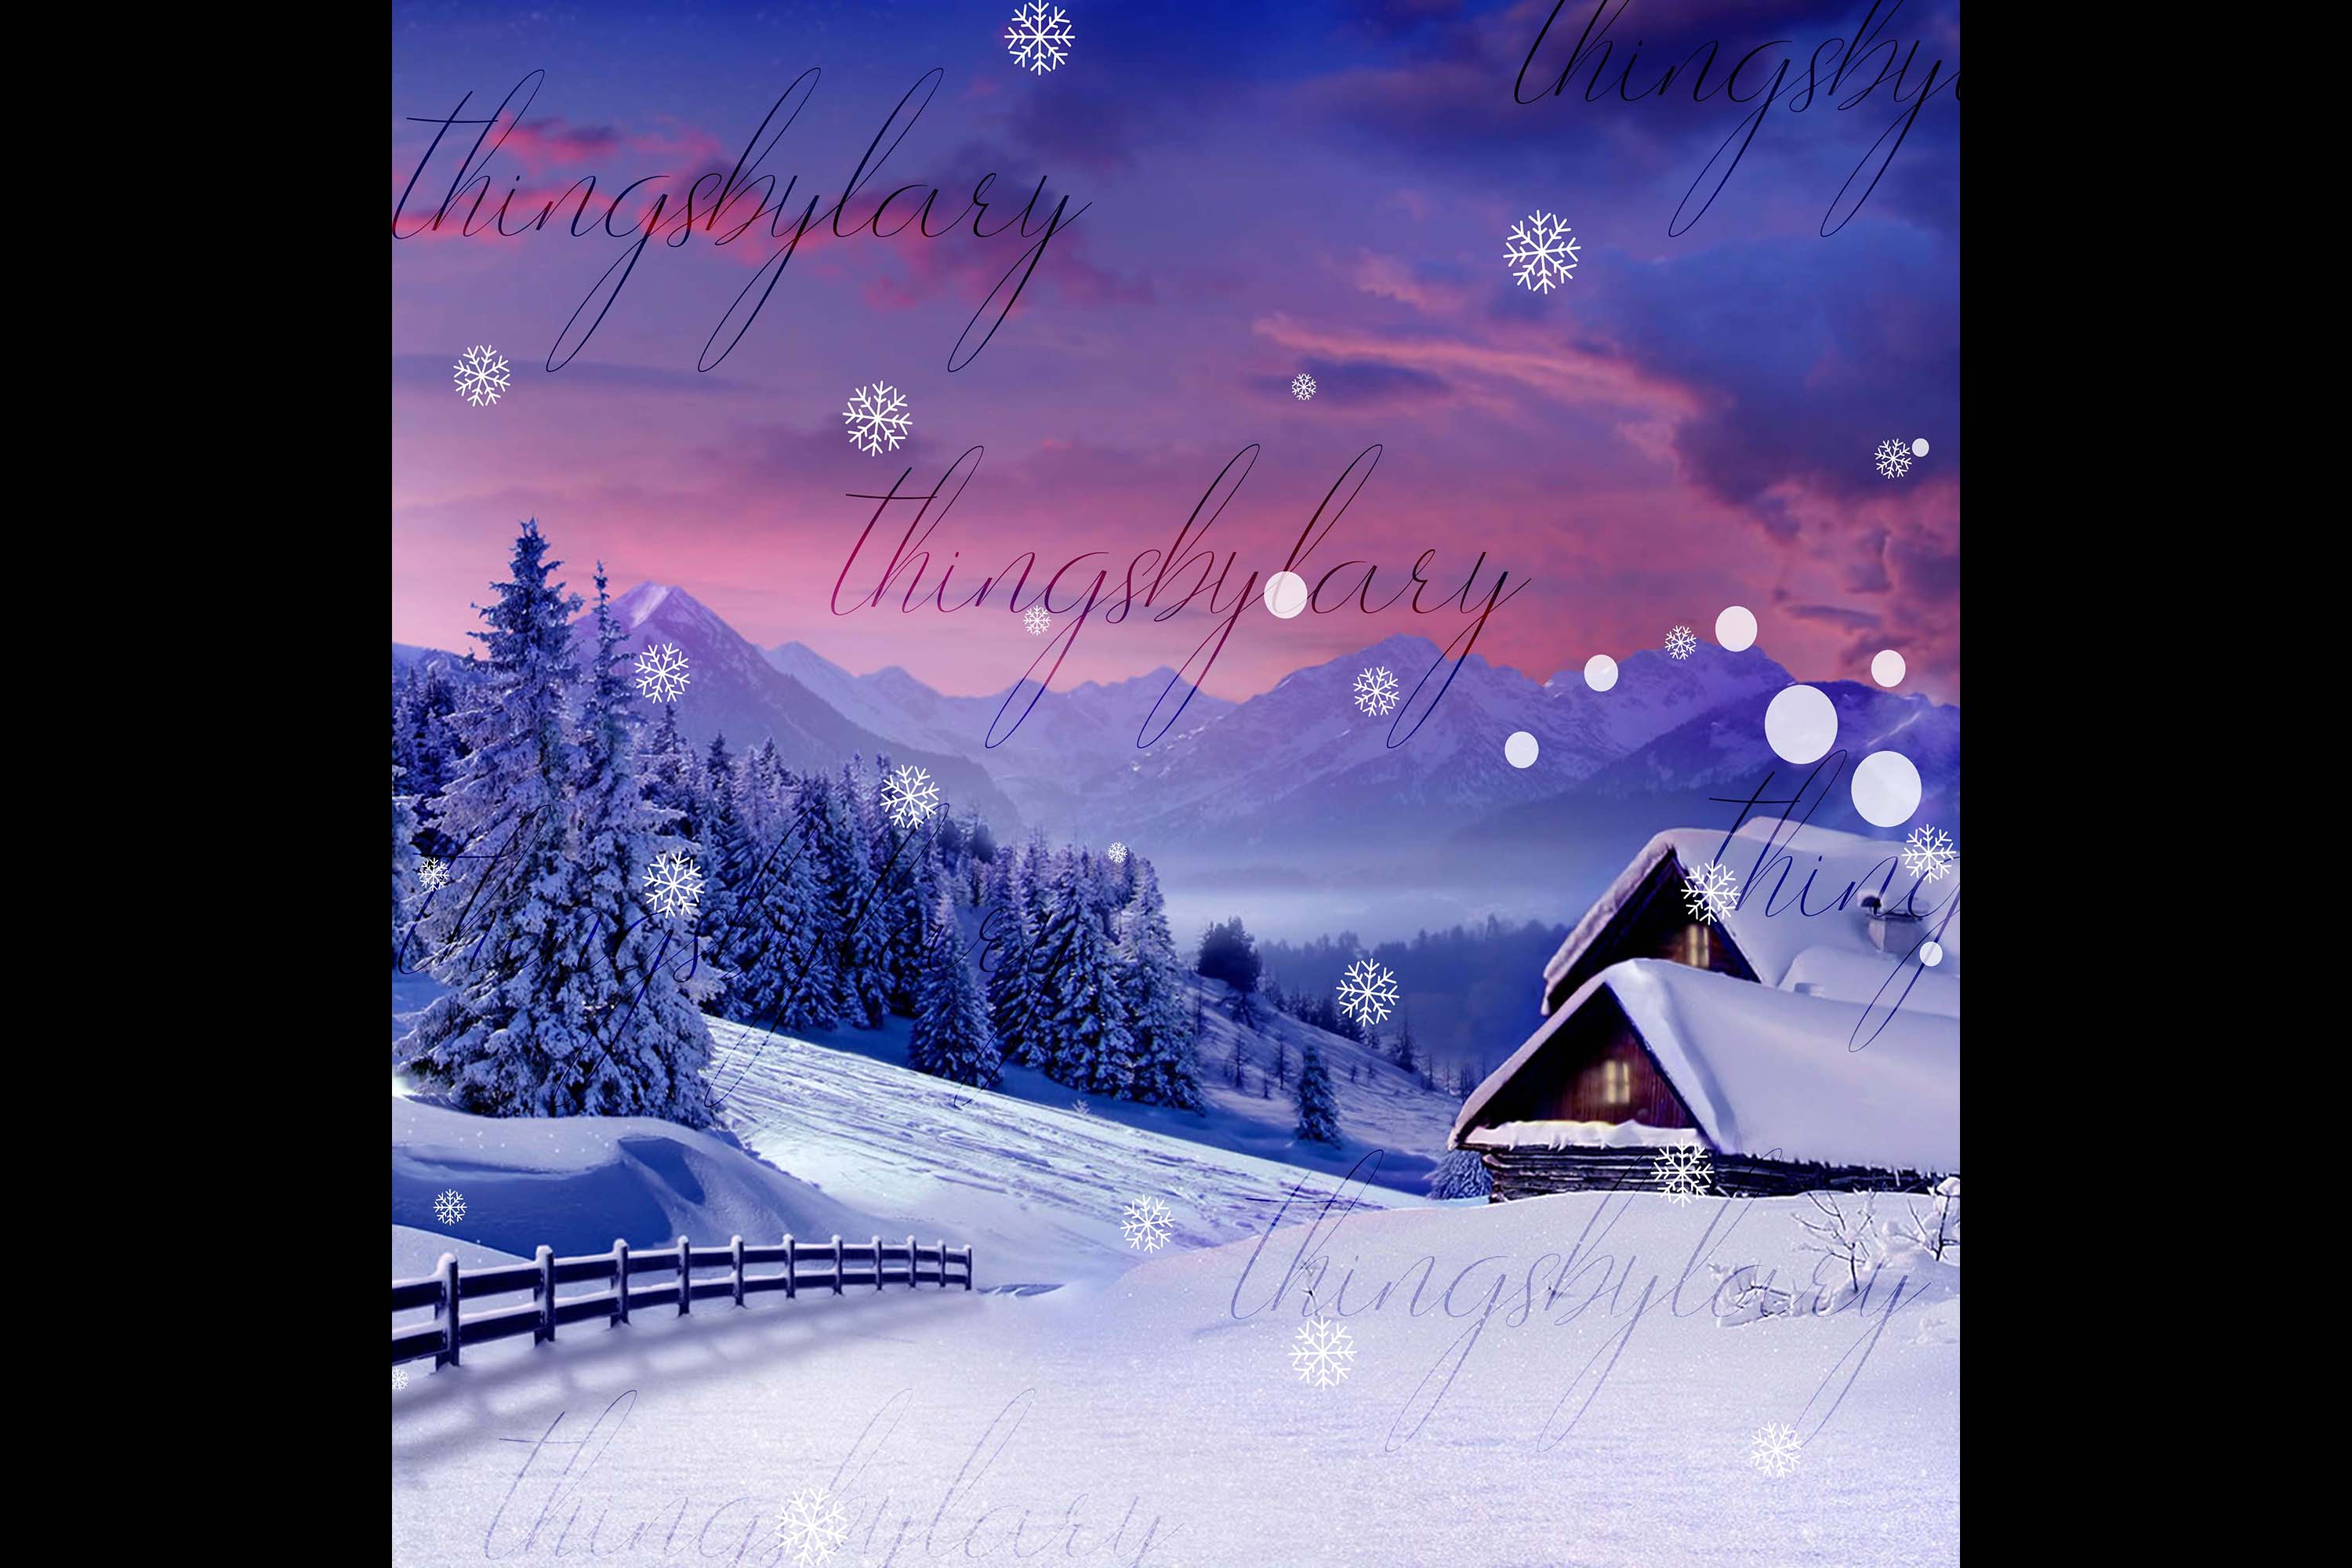 27 Falling Snowflakes Overlay Digital Images PNG Transparent example image 3